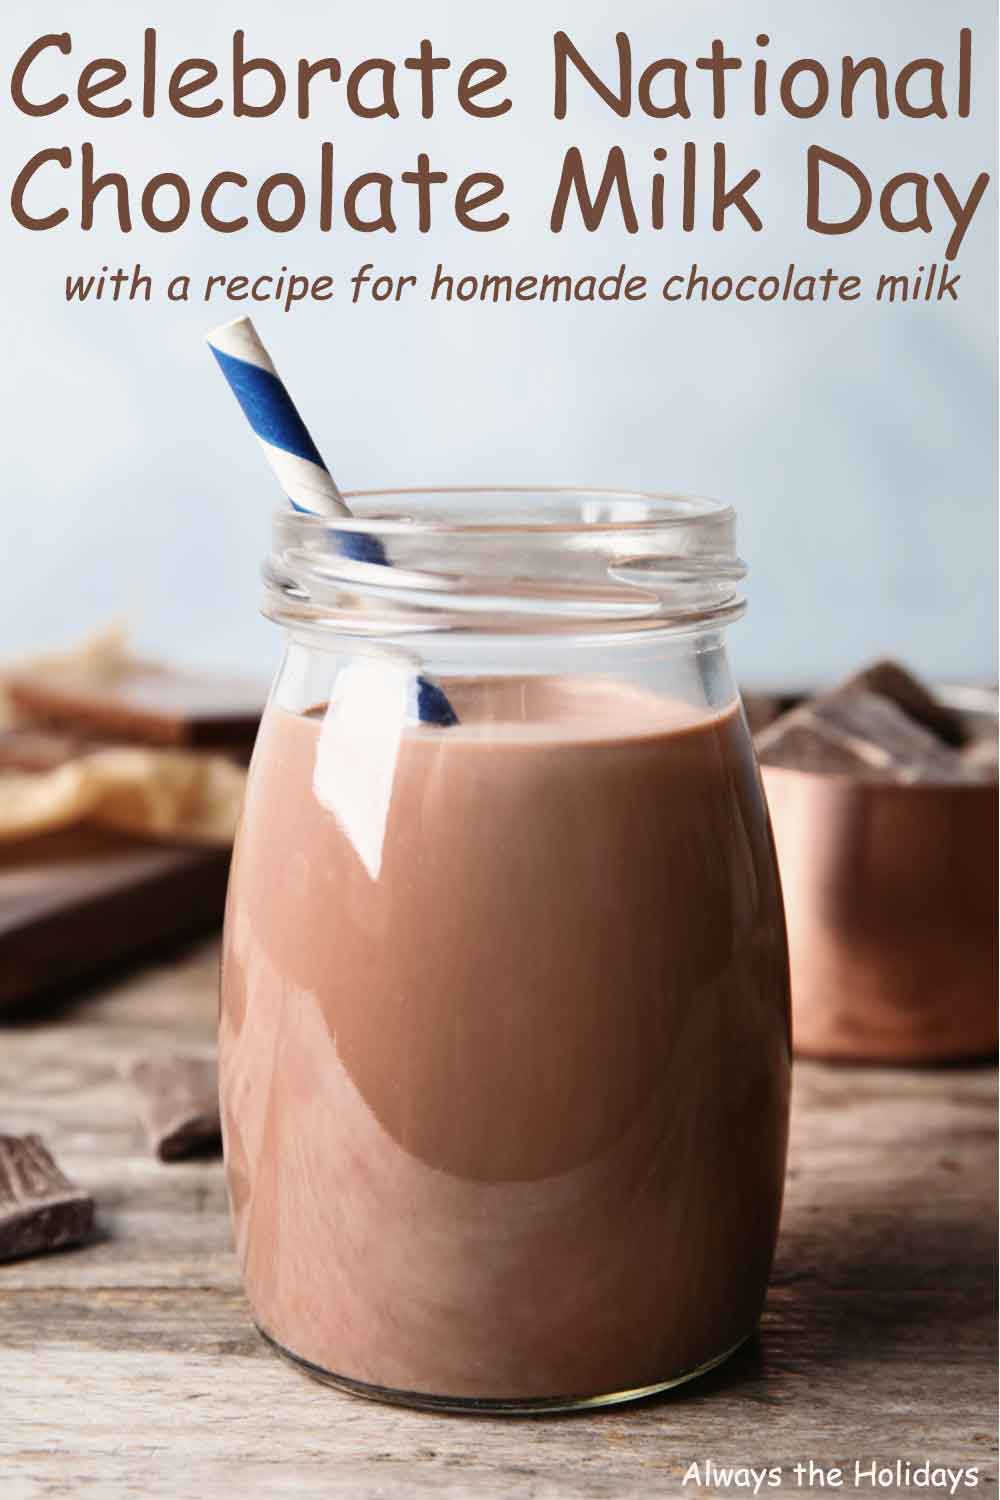 """A mason jar of chocolate milk sitting on a counter next to chocolate pieces with a text overlay that reads """"Celebrate National Chocolate Milk Day with a recipe for homemade chocolate milk""""."""